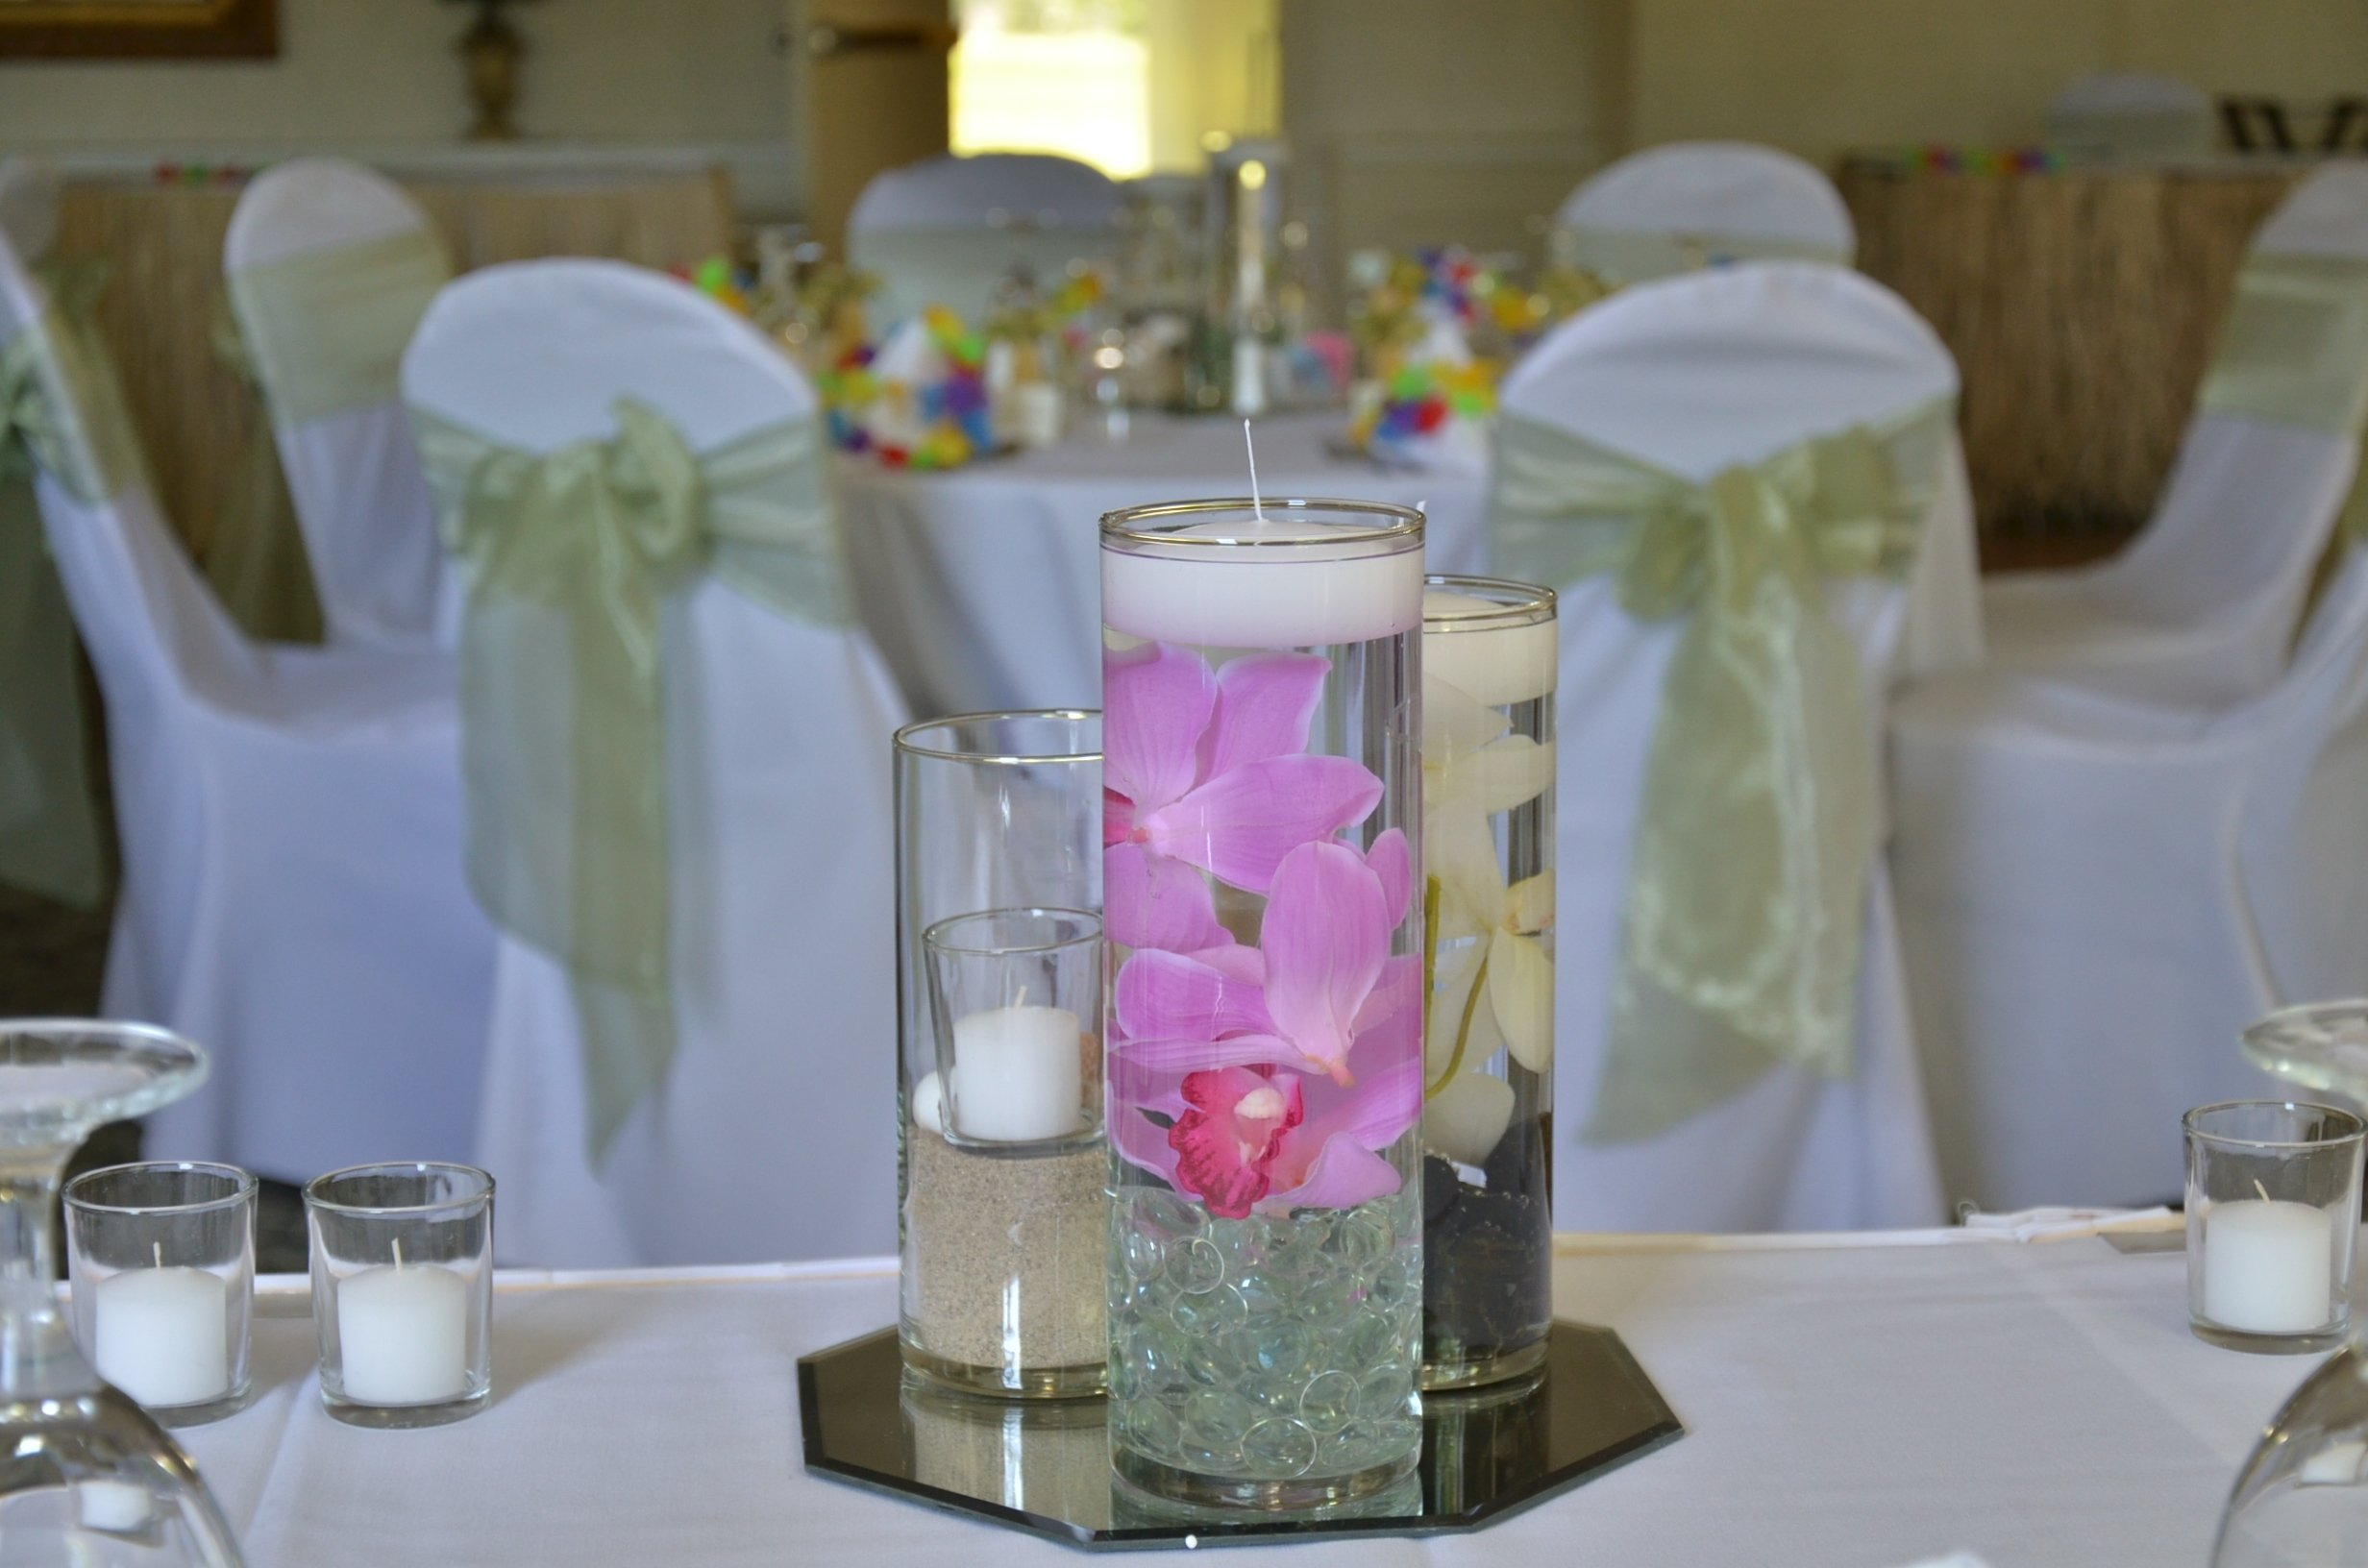 10 Perfect Wedding Ideas On A Tight Budget small budget wedding centerpiece ideas wedding bliss baby kiss 2020